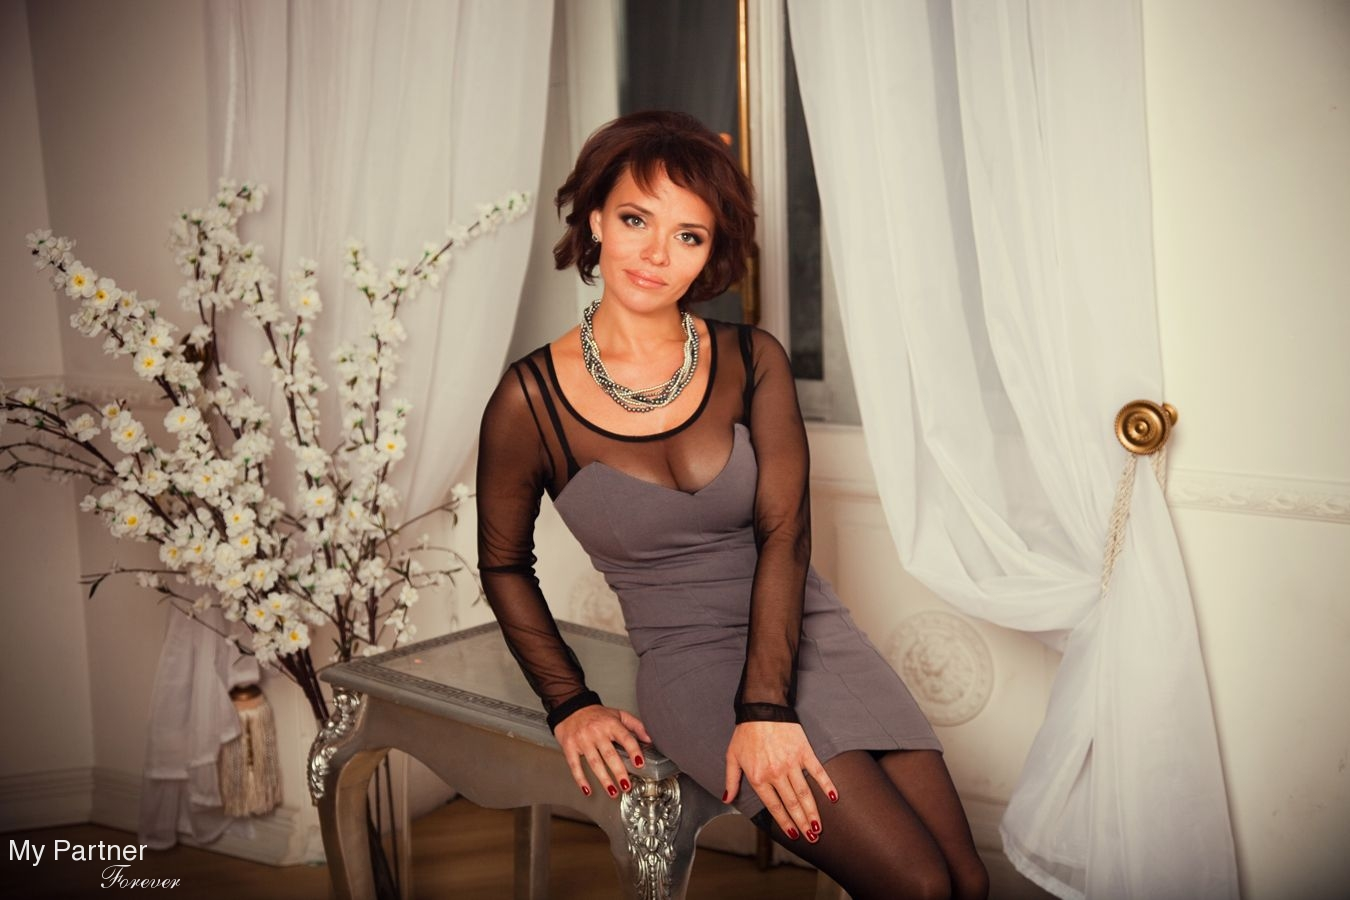 For Russian Brides Can 23